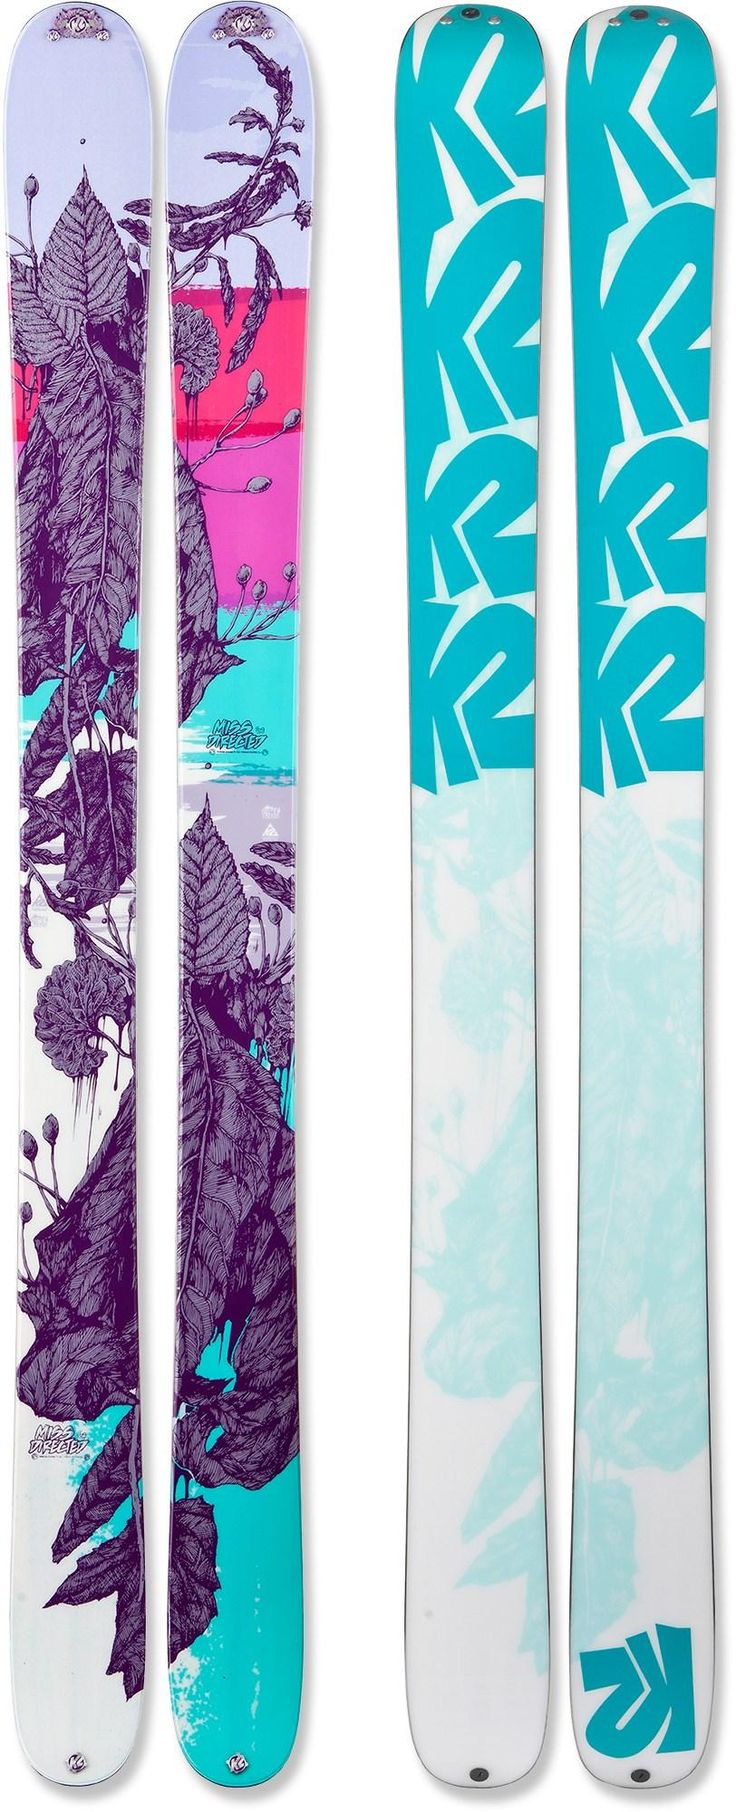 K2 MissDirected Skis - Women's. These are beautiful!!!